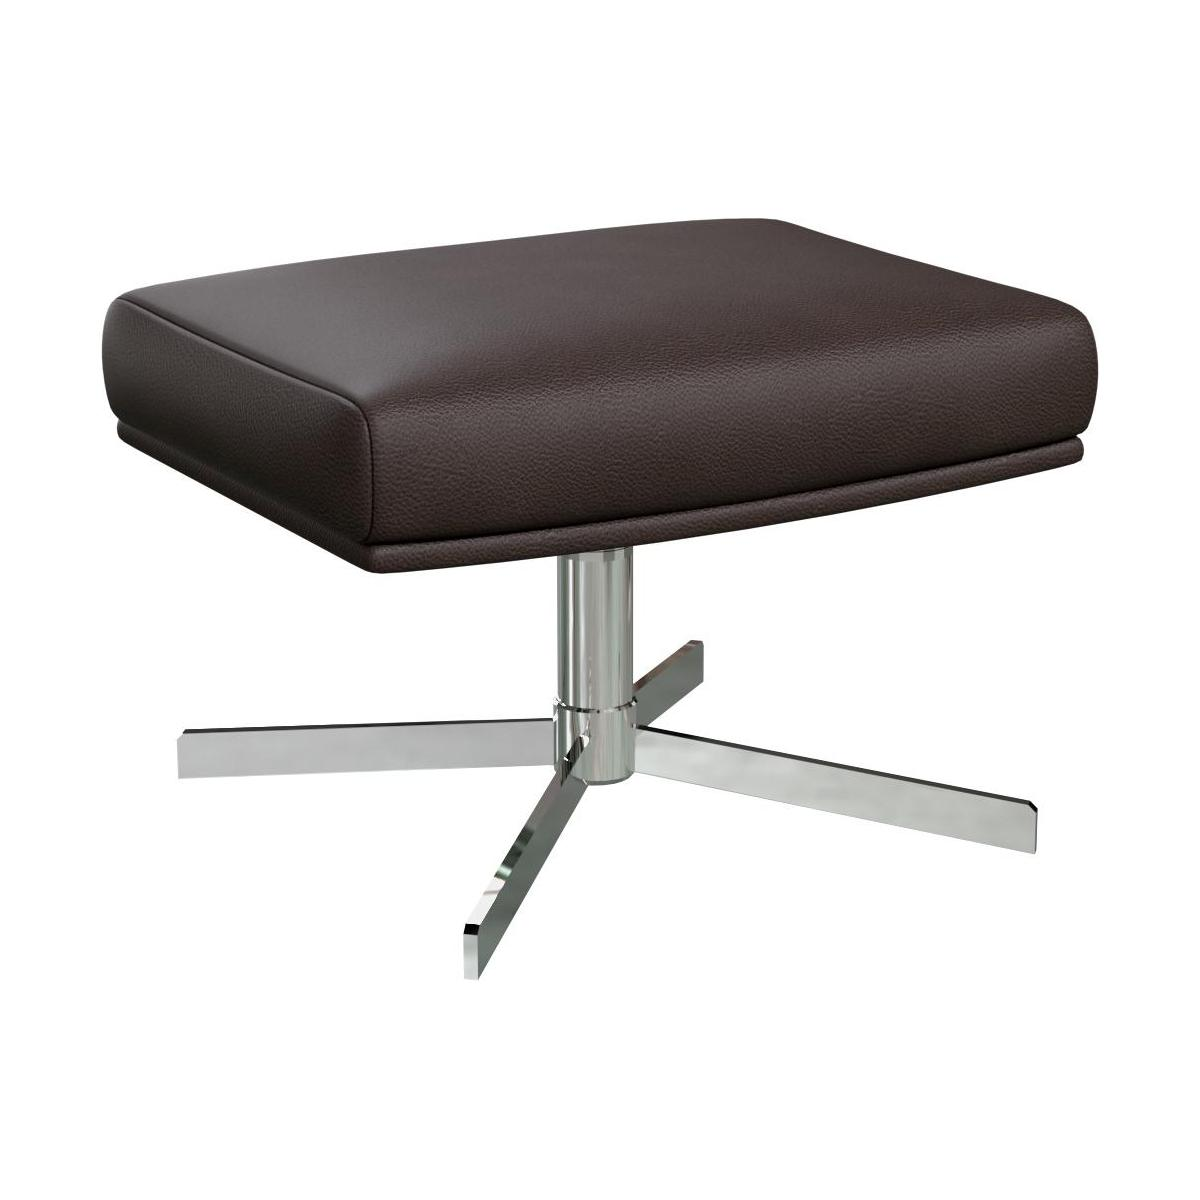 Footstool in Savoy semi-aniline leather, dark brown amaretto with metal cross leg